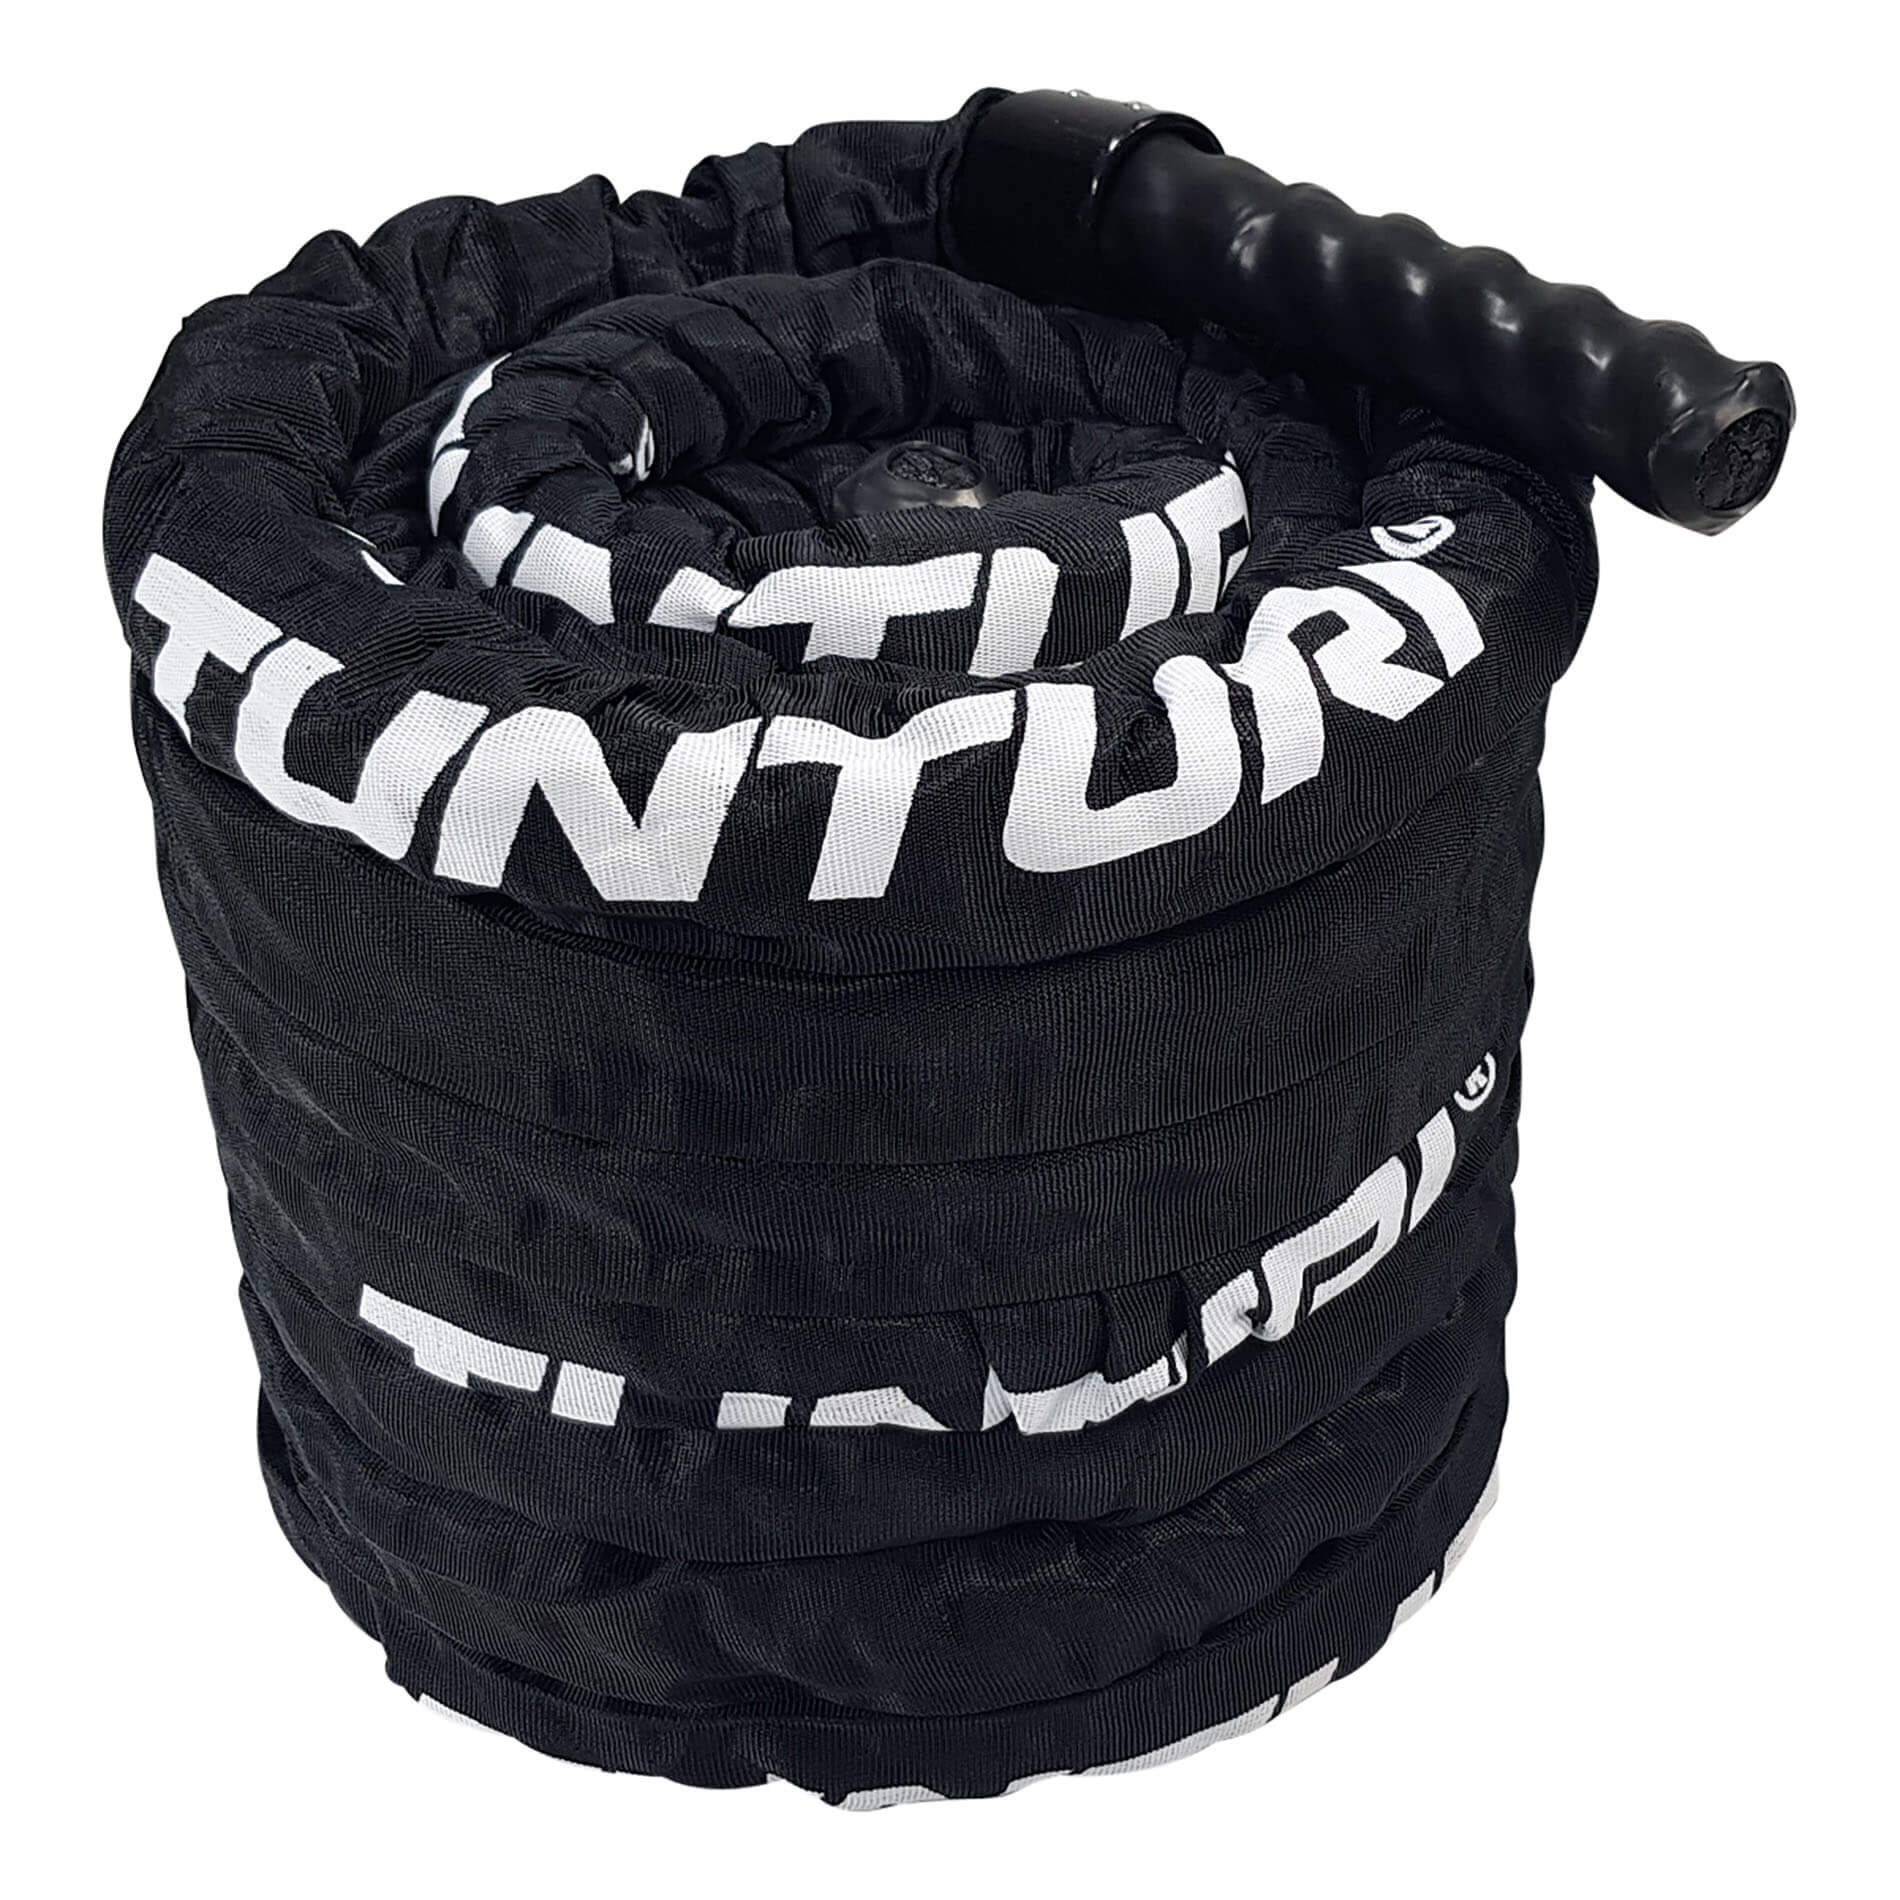 Pro Battle Rope With Protection